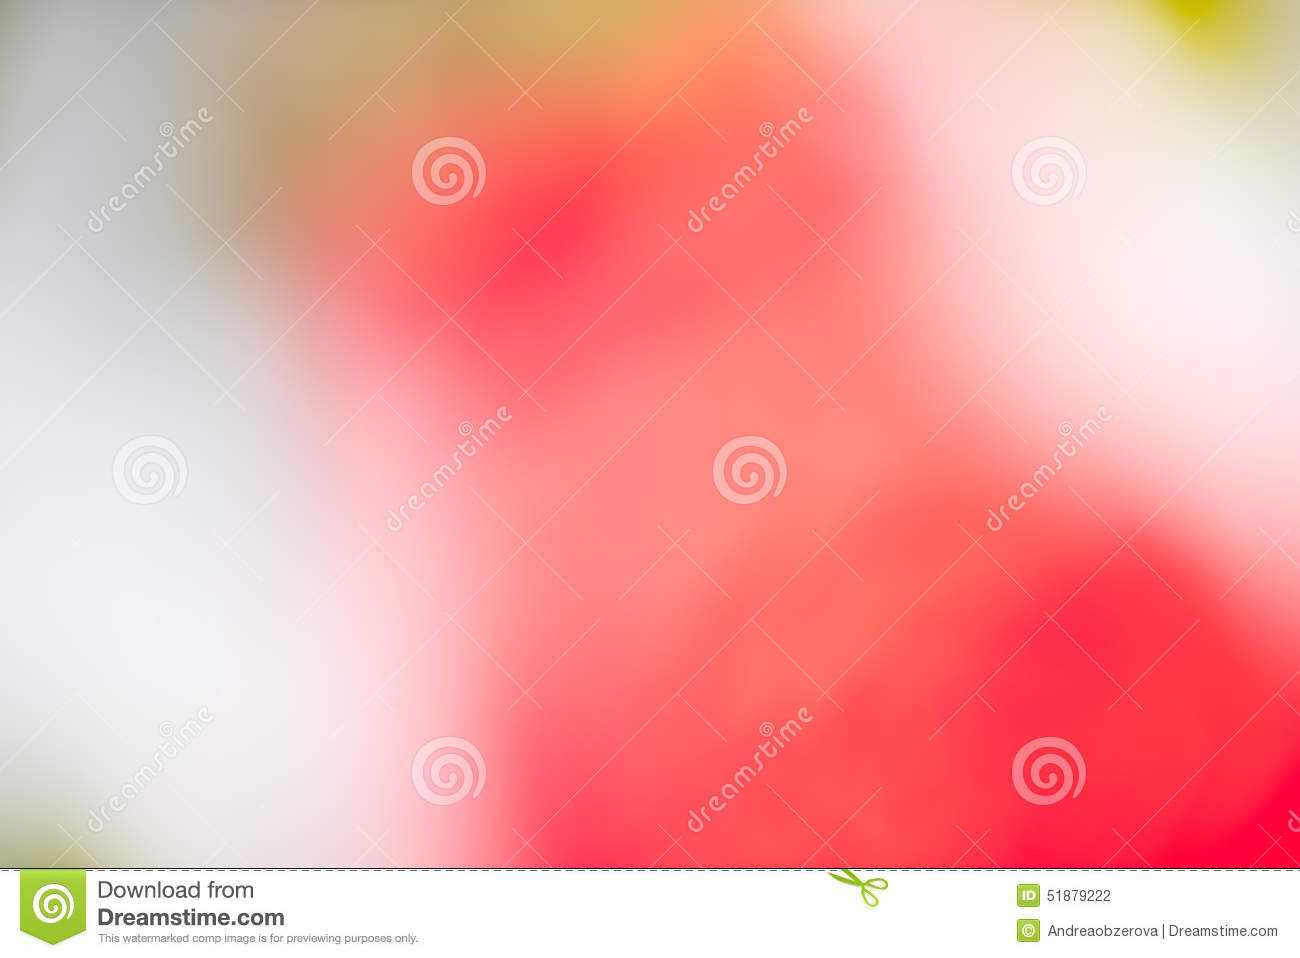 Light effects background, abstract light background, light leaks,